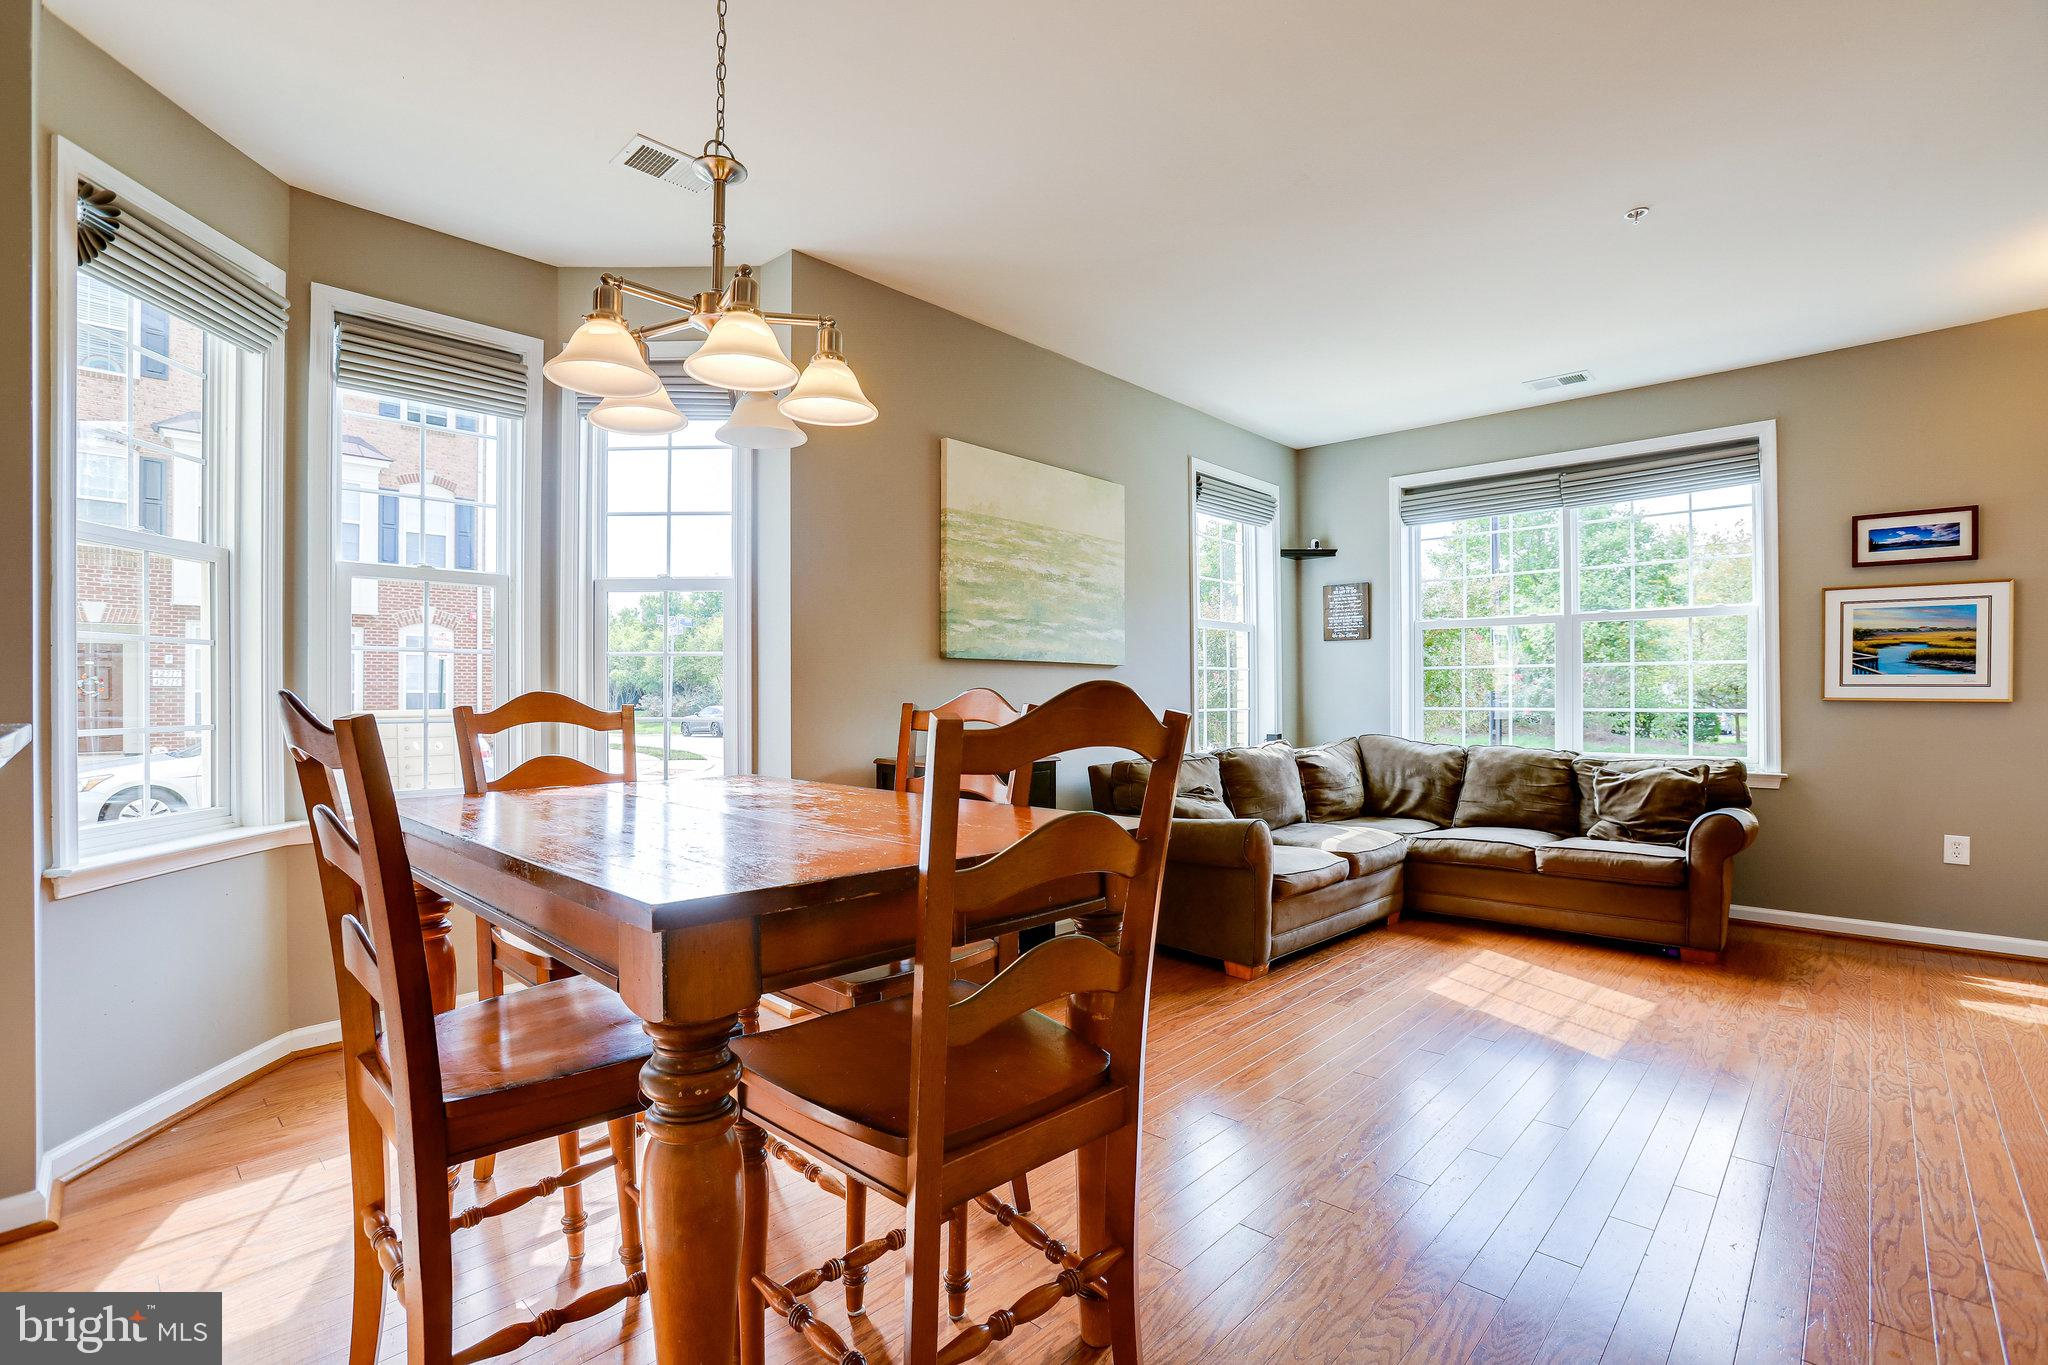 Surrounded by excellent schools, great shopping and dining this 2-level end unit condo in Brambleton